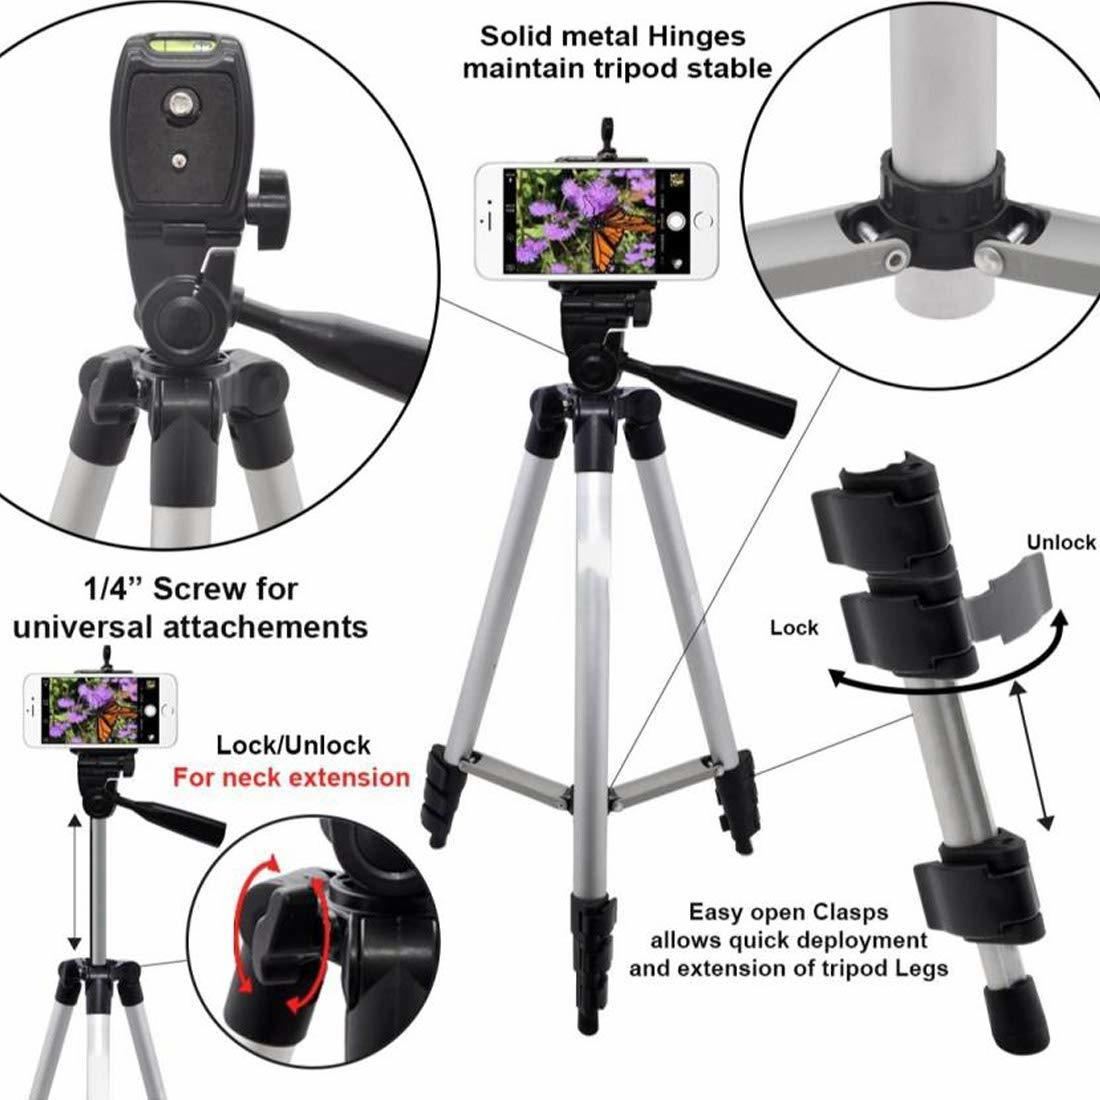 3888 Portable and Foldable Camera Mobile Tripod